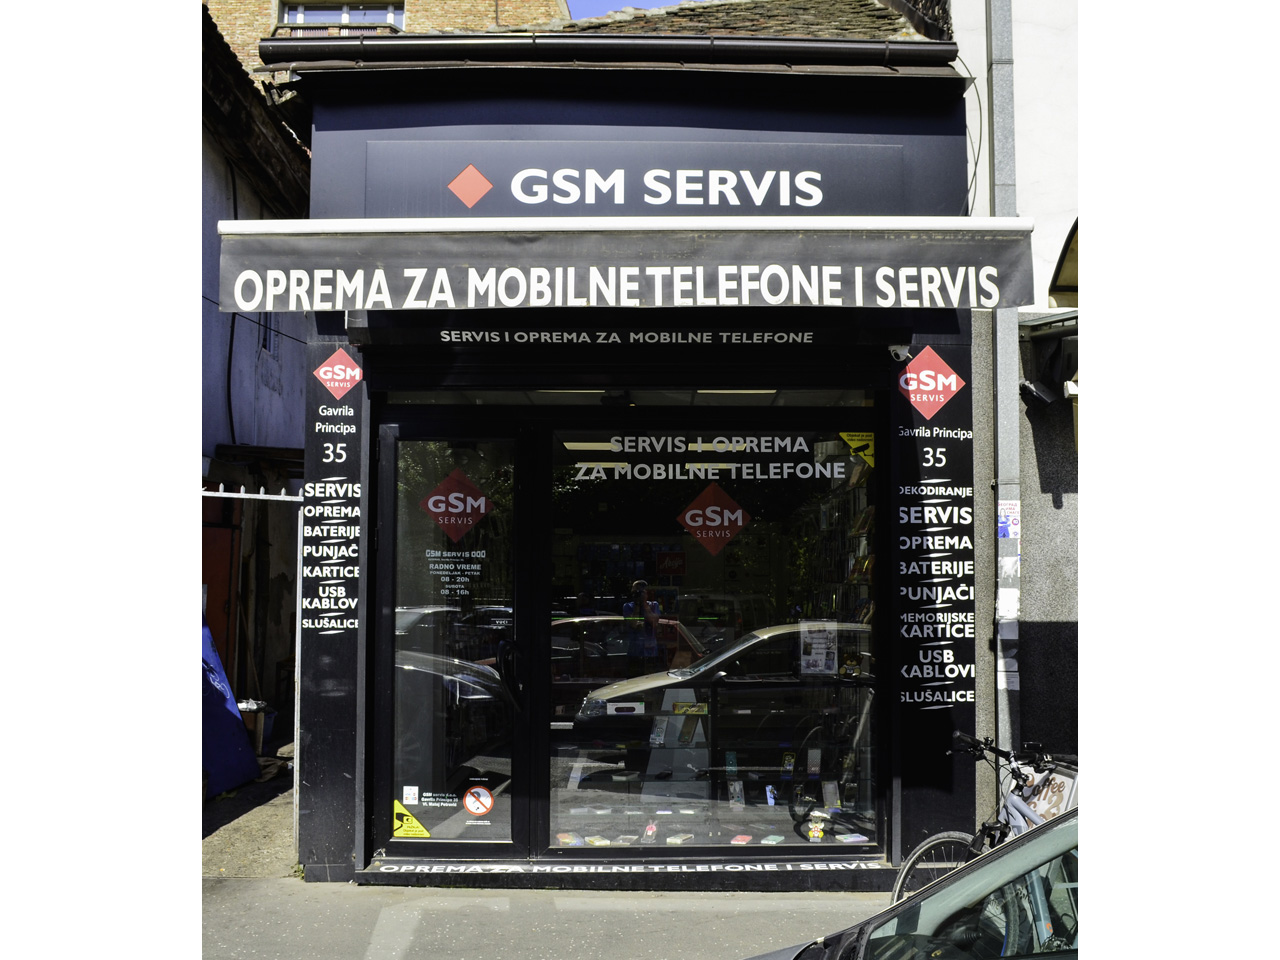 GSM MOBILE PHONE SERVICE AND EQUIPMENT Mobile phones, mobile phone equipment Beograd